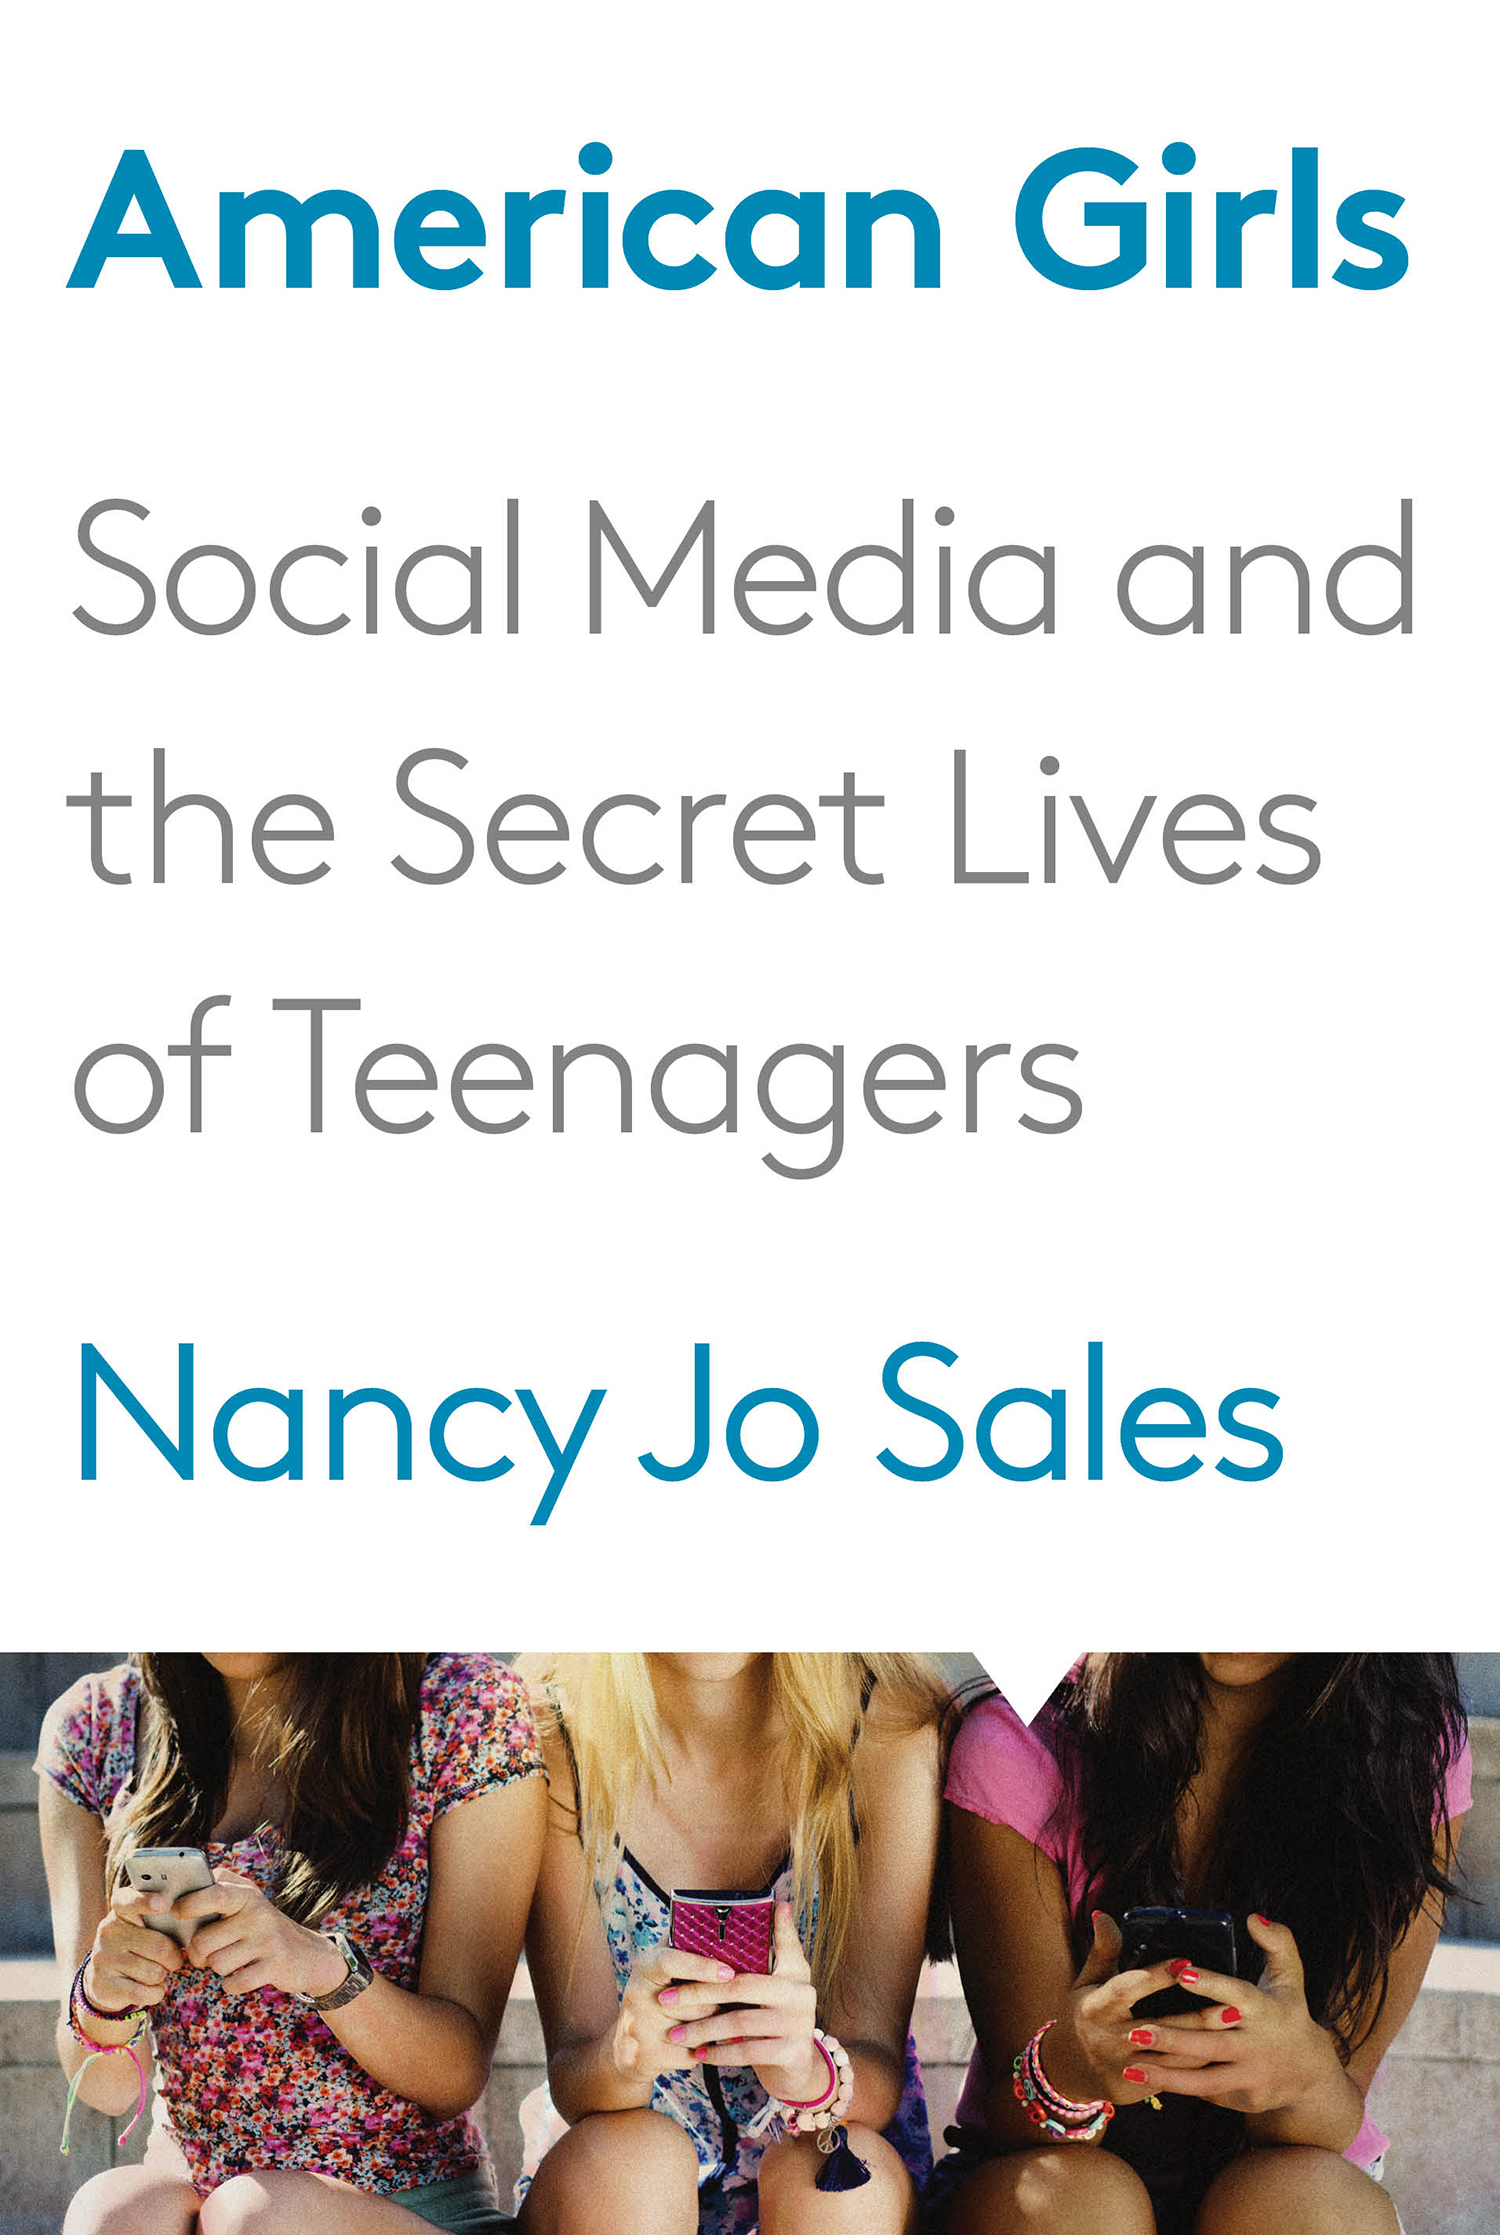 teen sales post